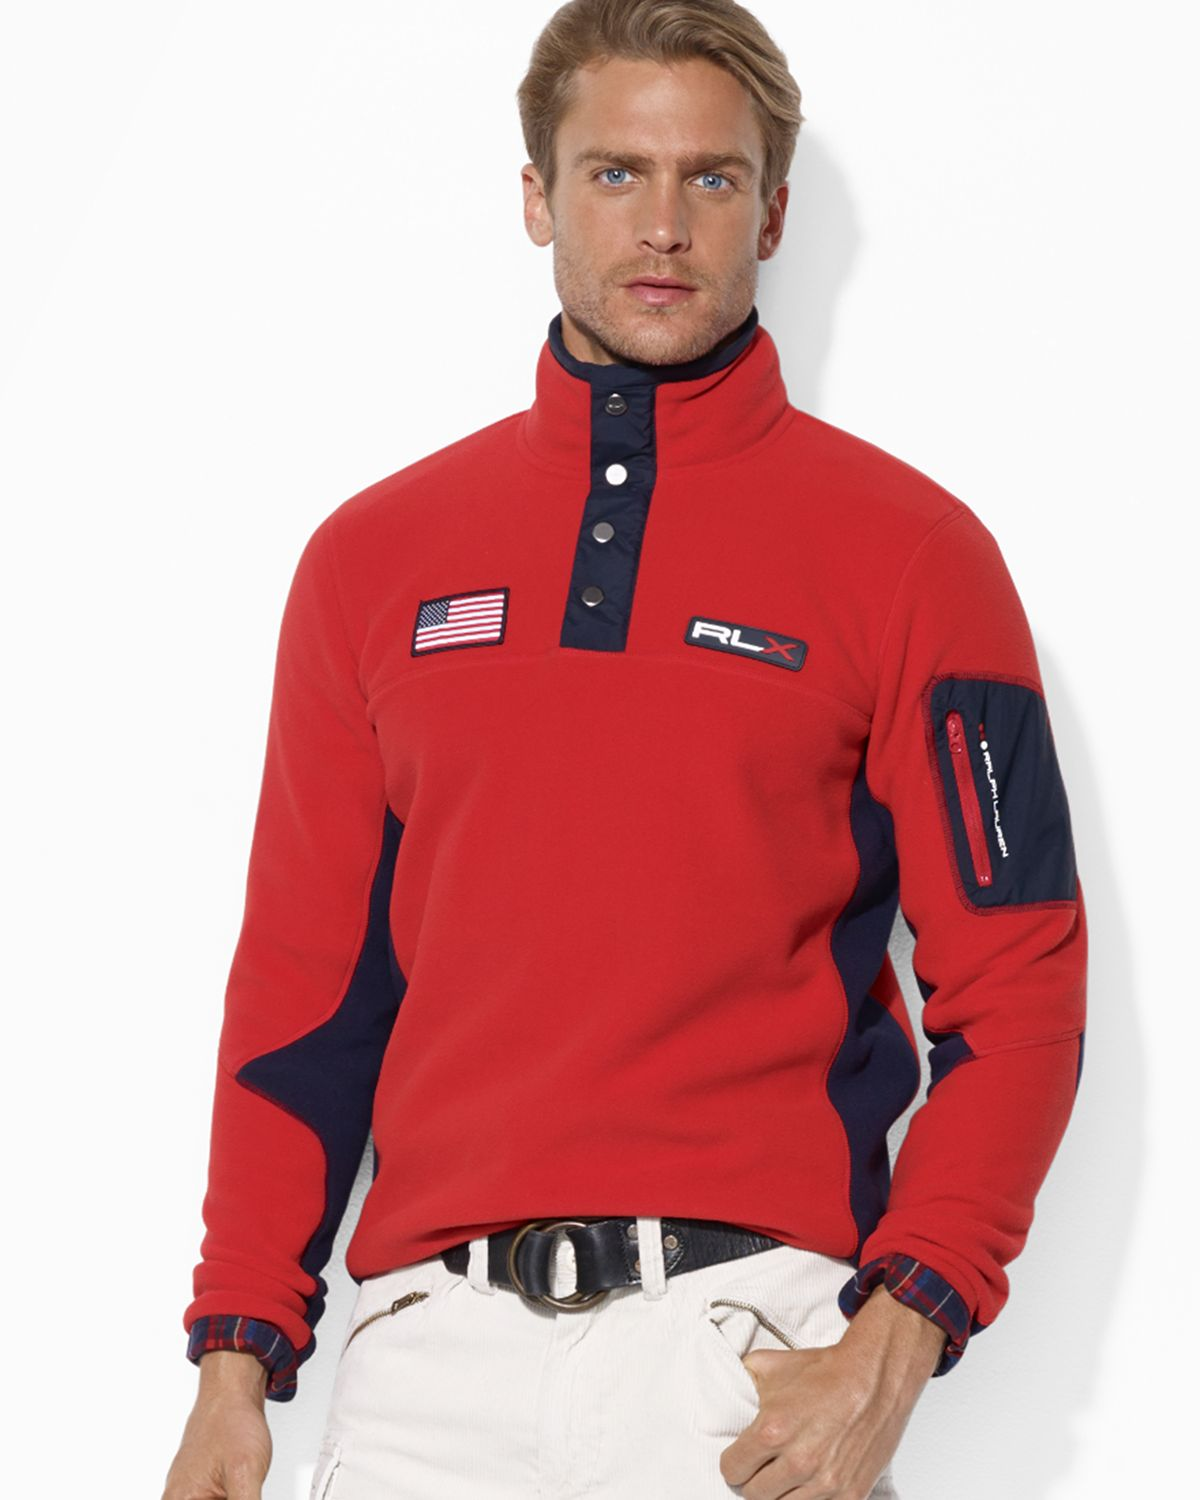 Ralph lauren Polo Usa Polar Fleece Mockneck Jacket in Red for Men